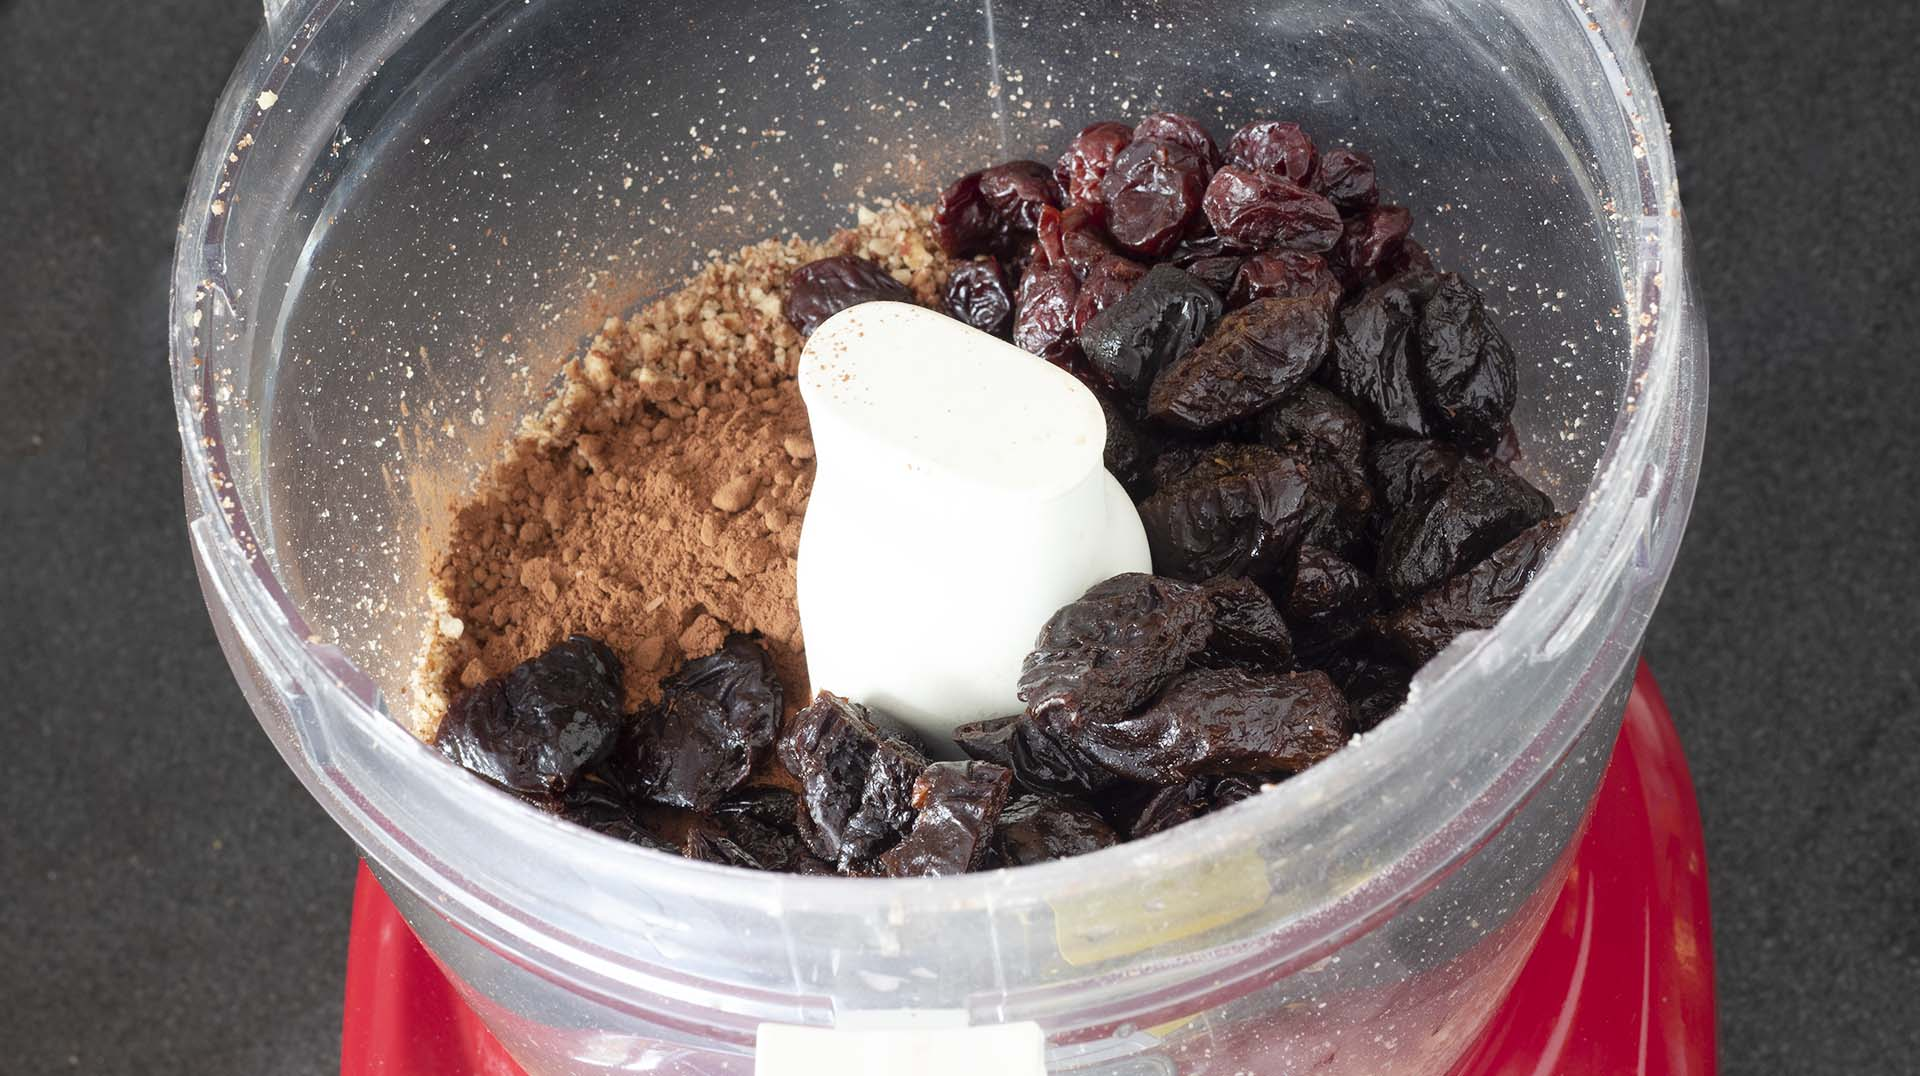 ingredients for raw brownie in food processor